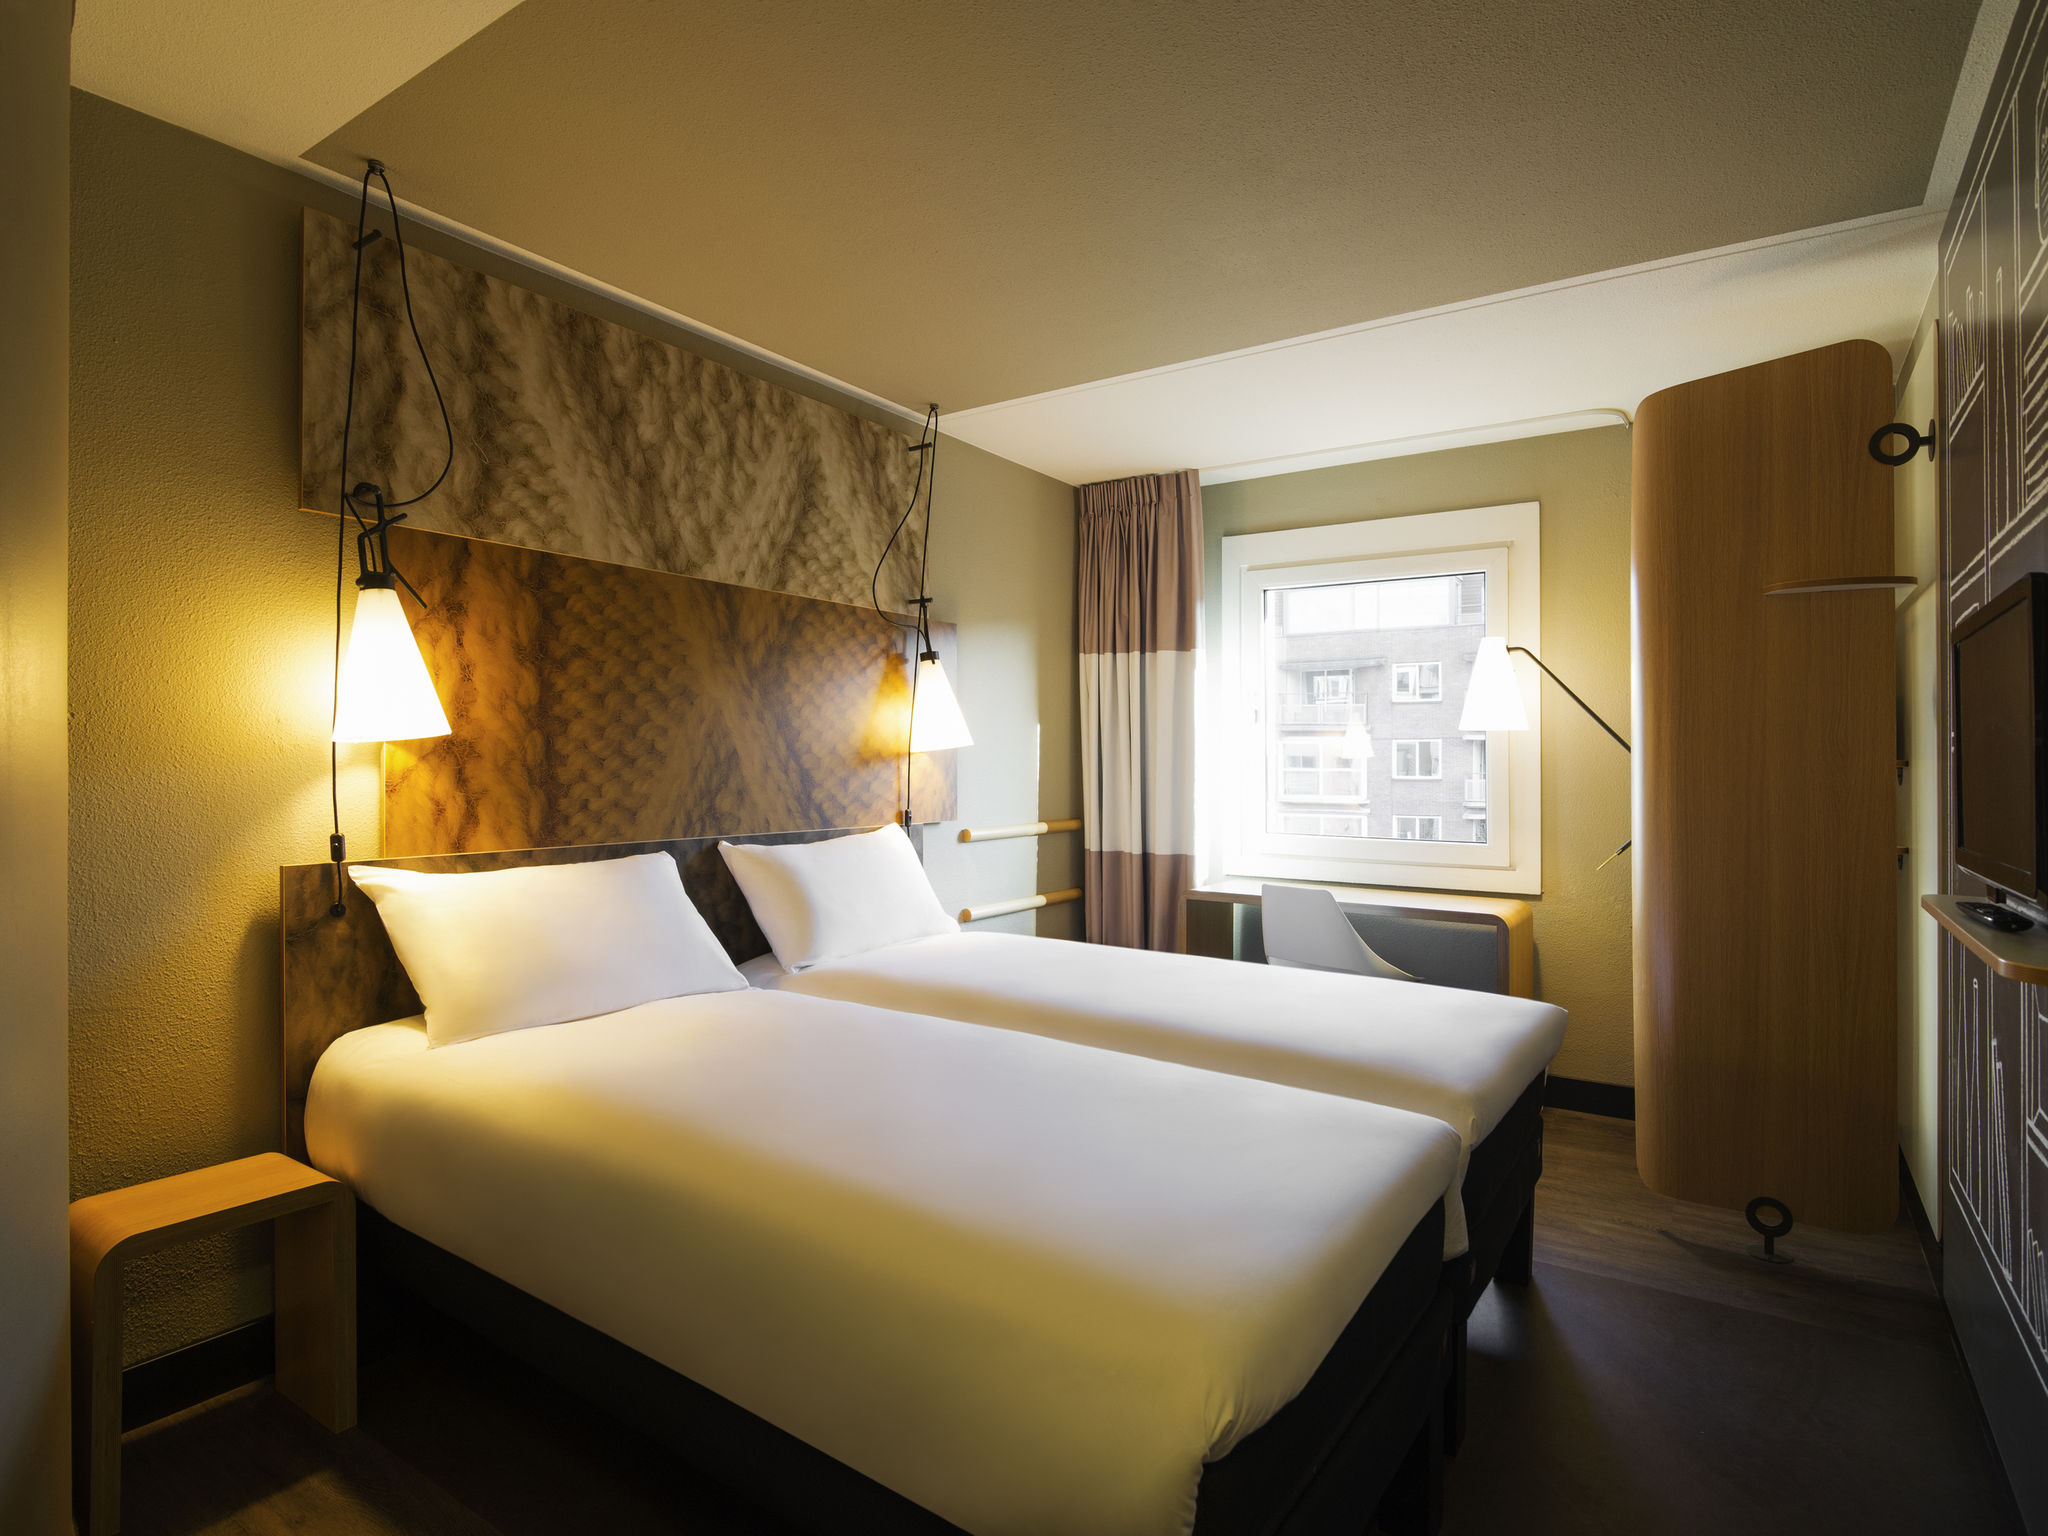 Cheap Hotel Amsterdam Stopera ibis In The City Centre